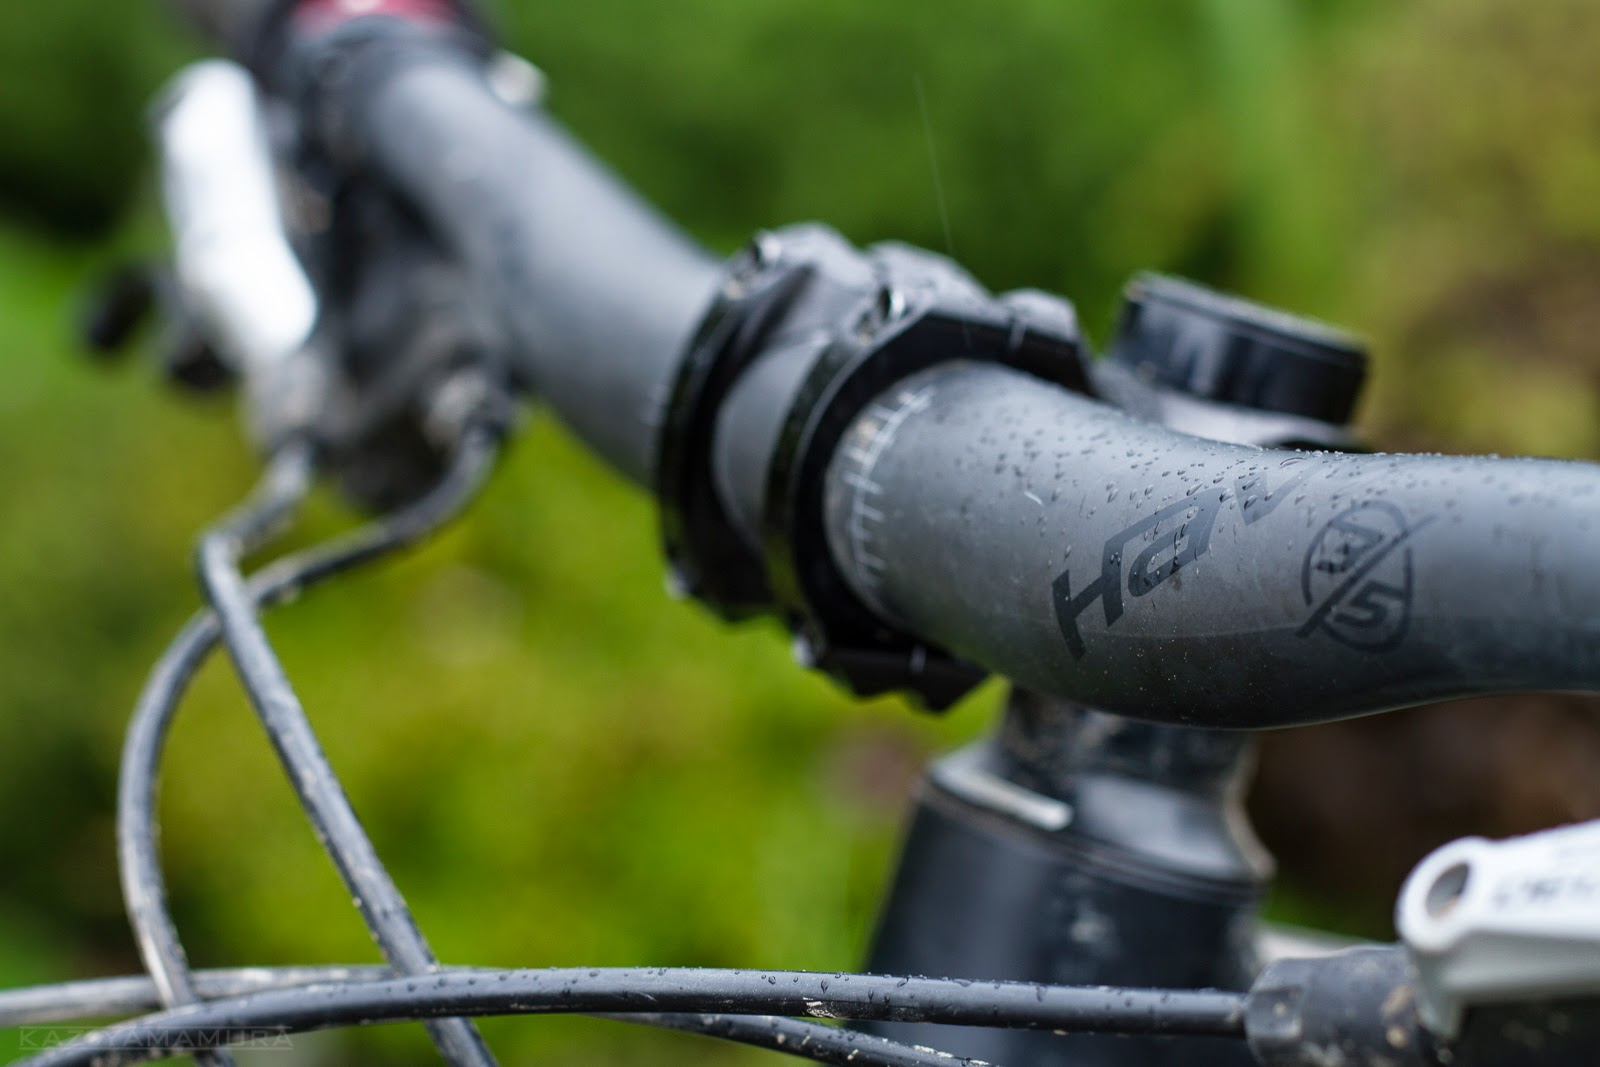 Bike News, New Product, Report, Carbon Mountain Bike, easton haven carbon bar, easton haven carbon stem, easton havoc carbon bar